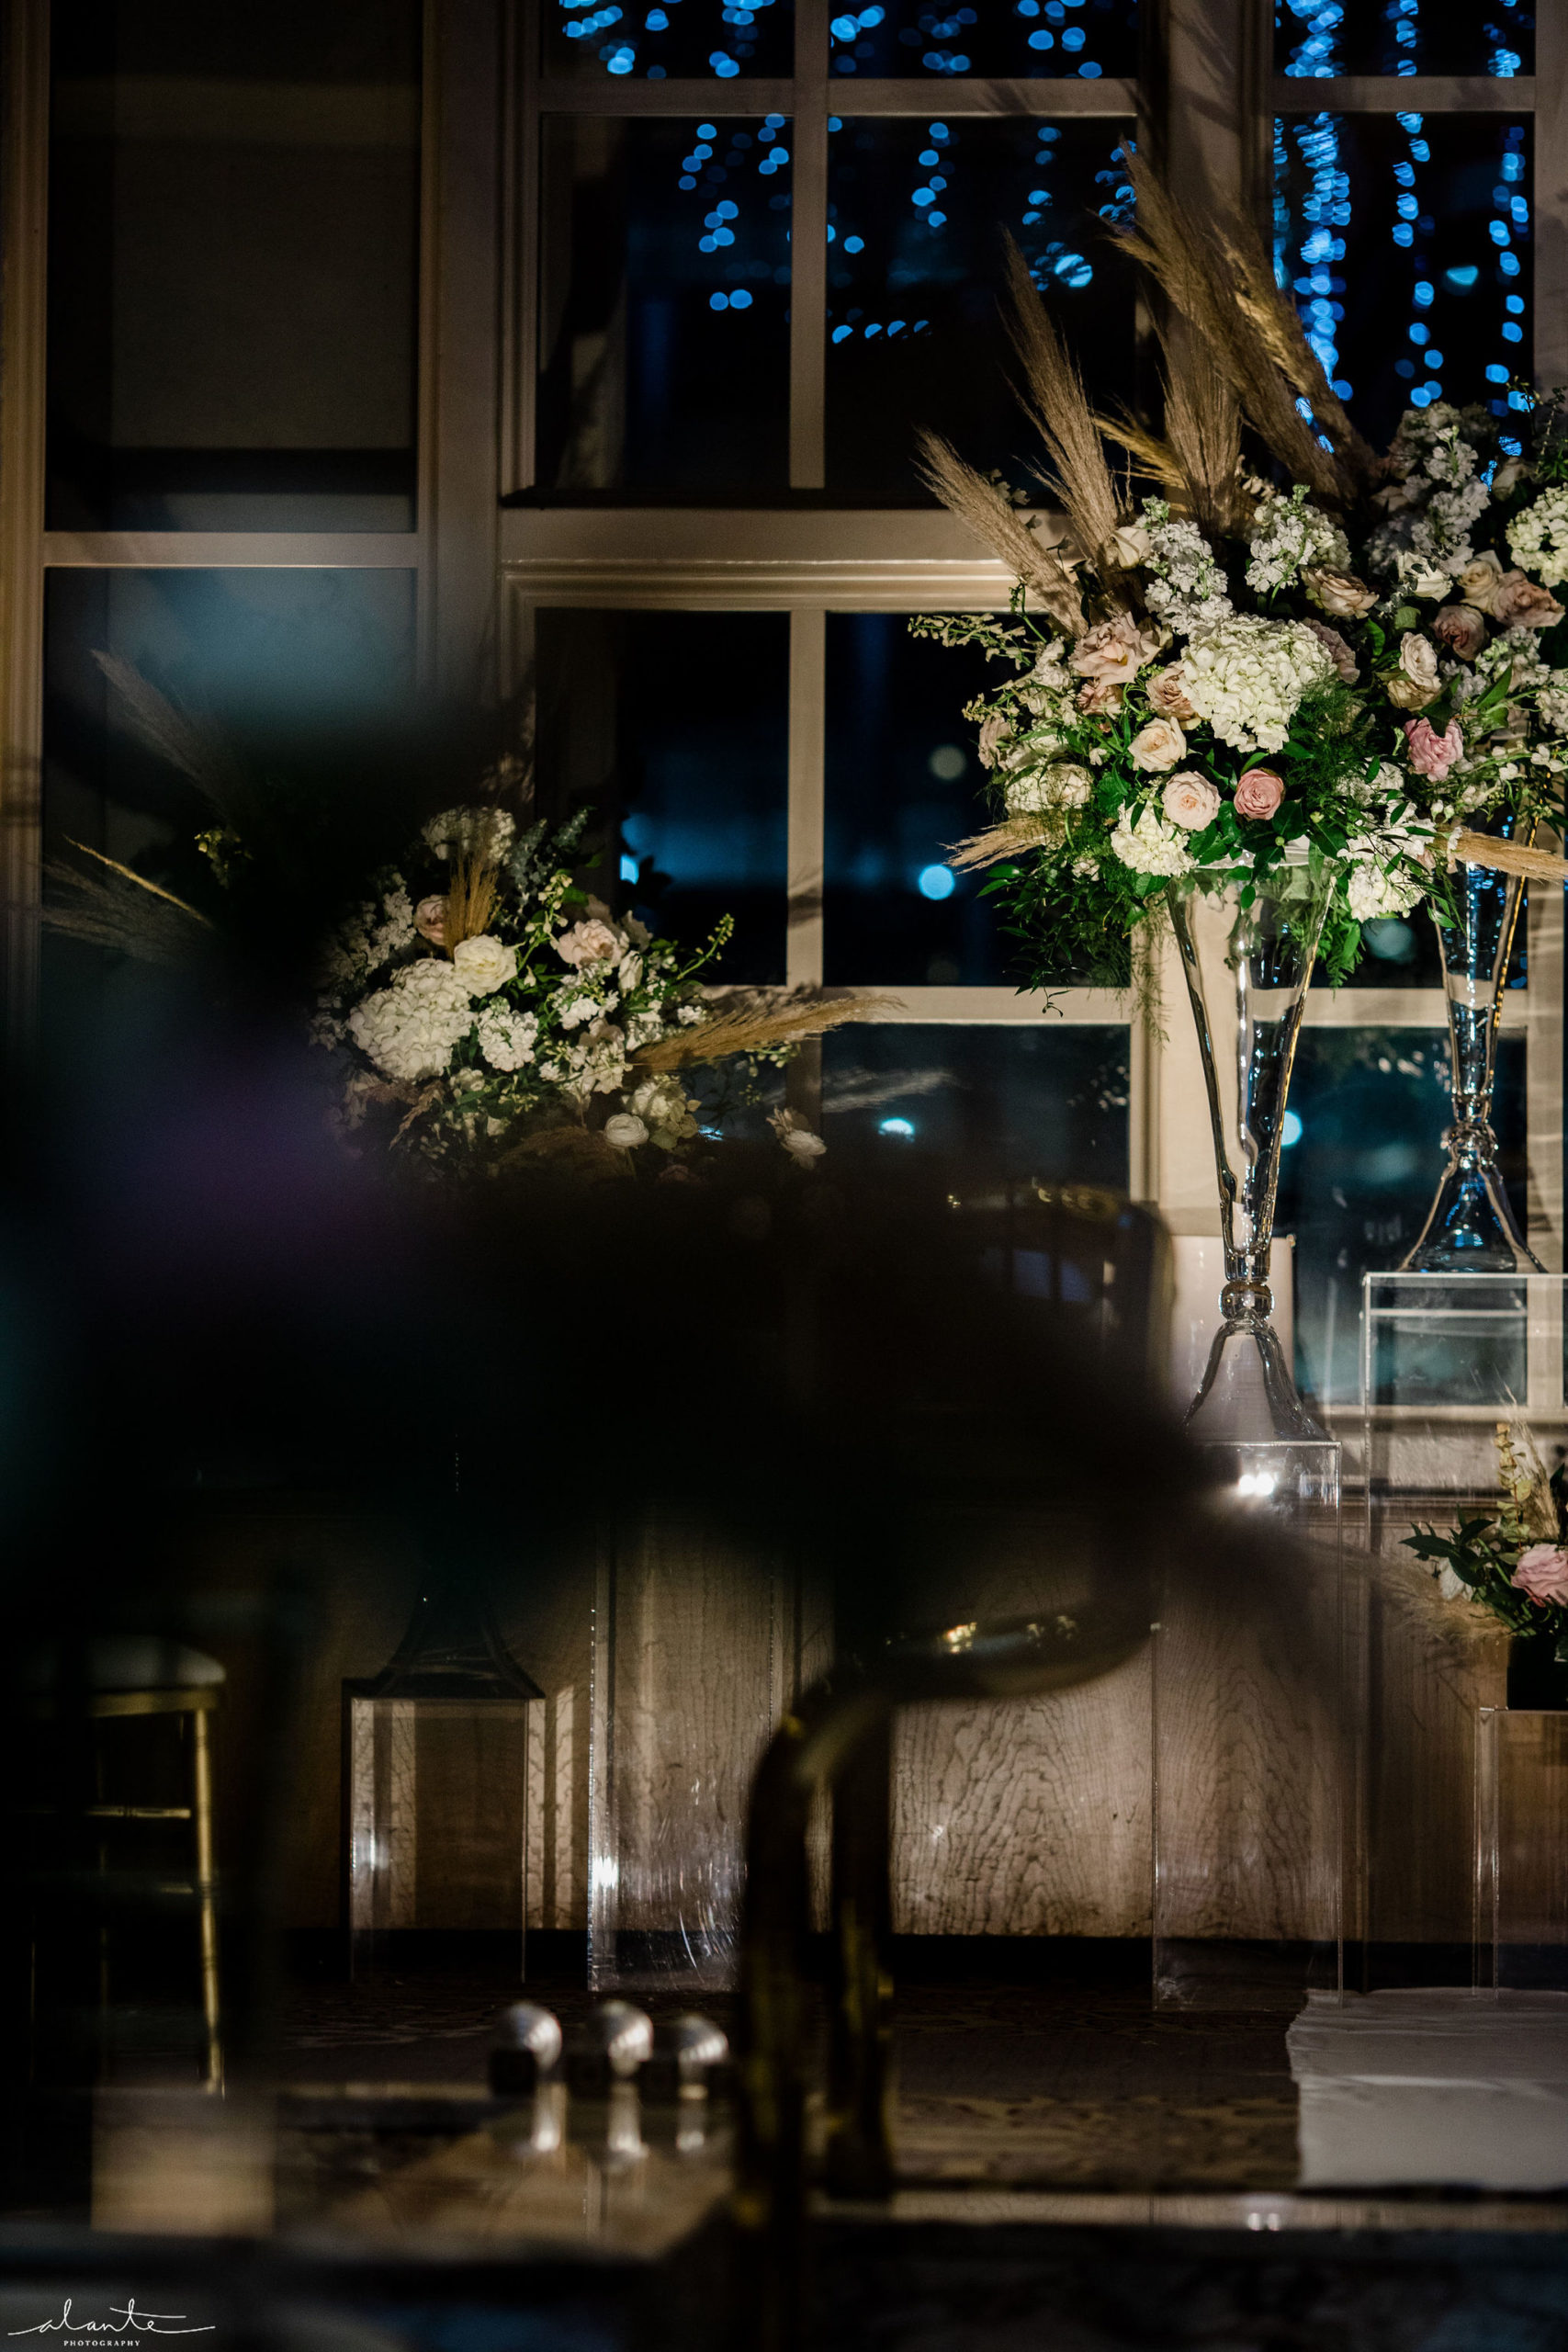 Winter evening wedding ceremony tall alter arrangements on crystal vases.